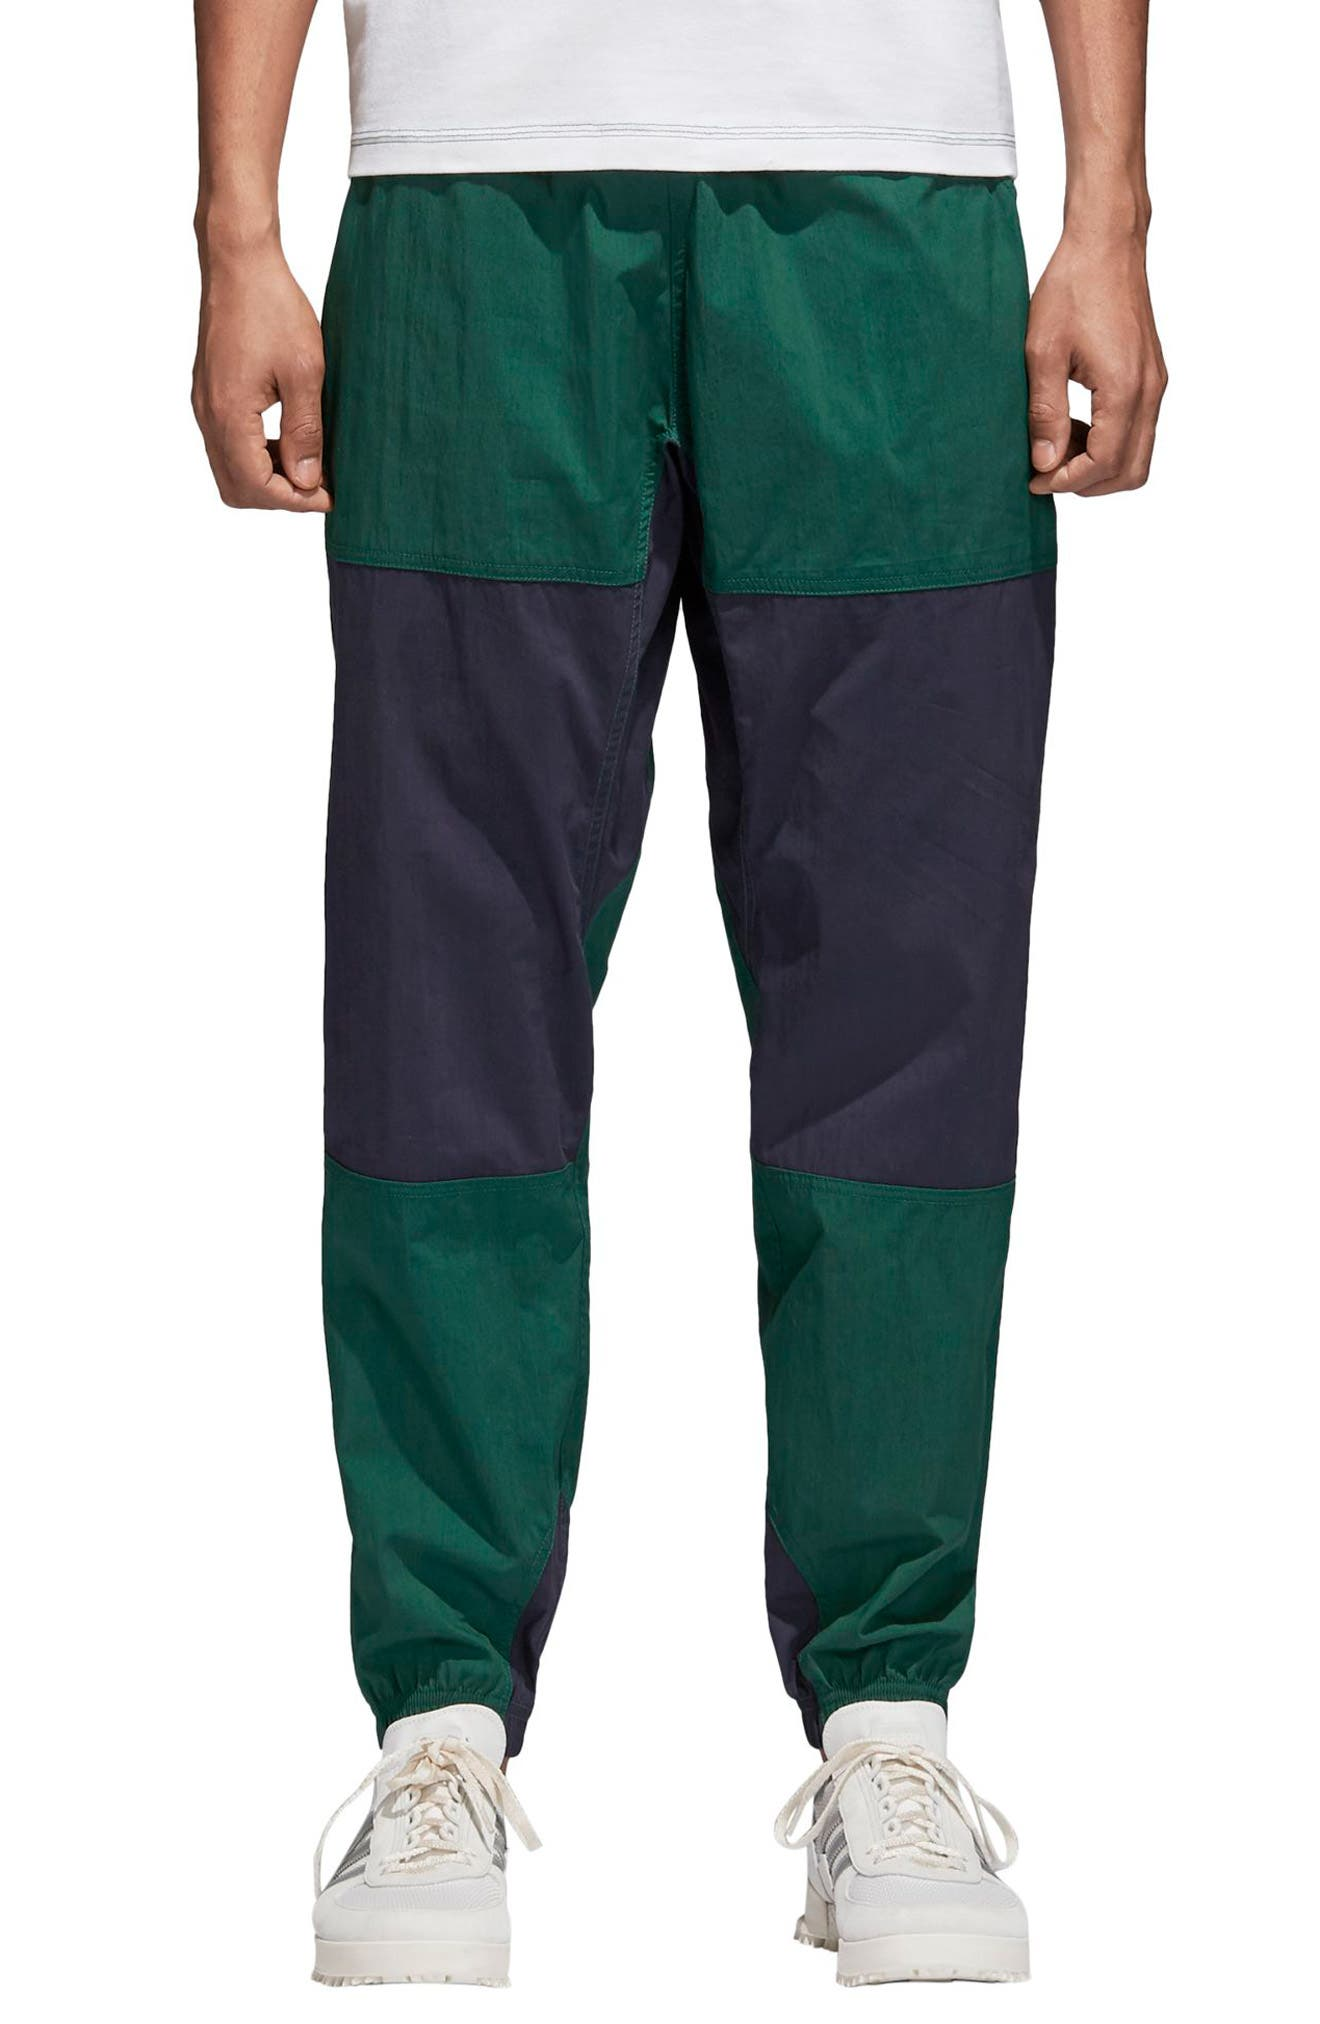 Atric Slim Fit Pants,                         Main,                         color, COLLEGIATE GREEN